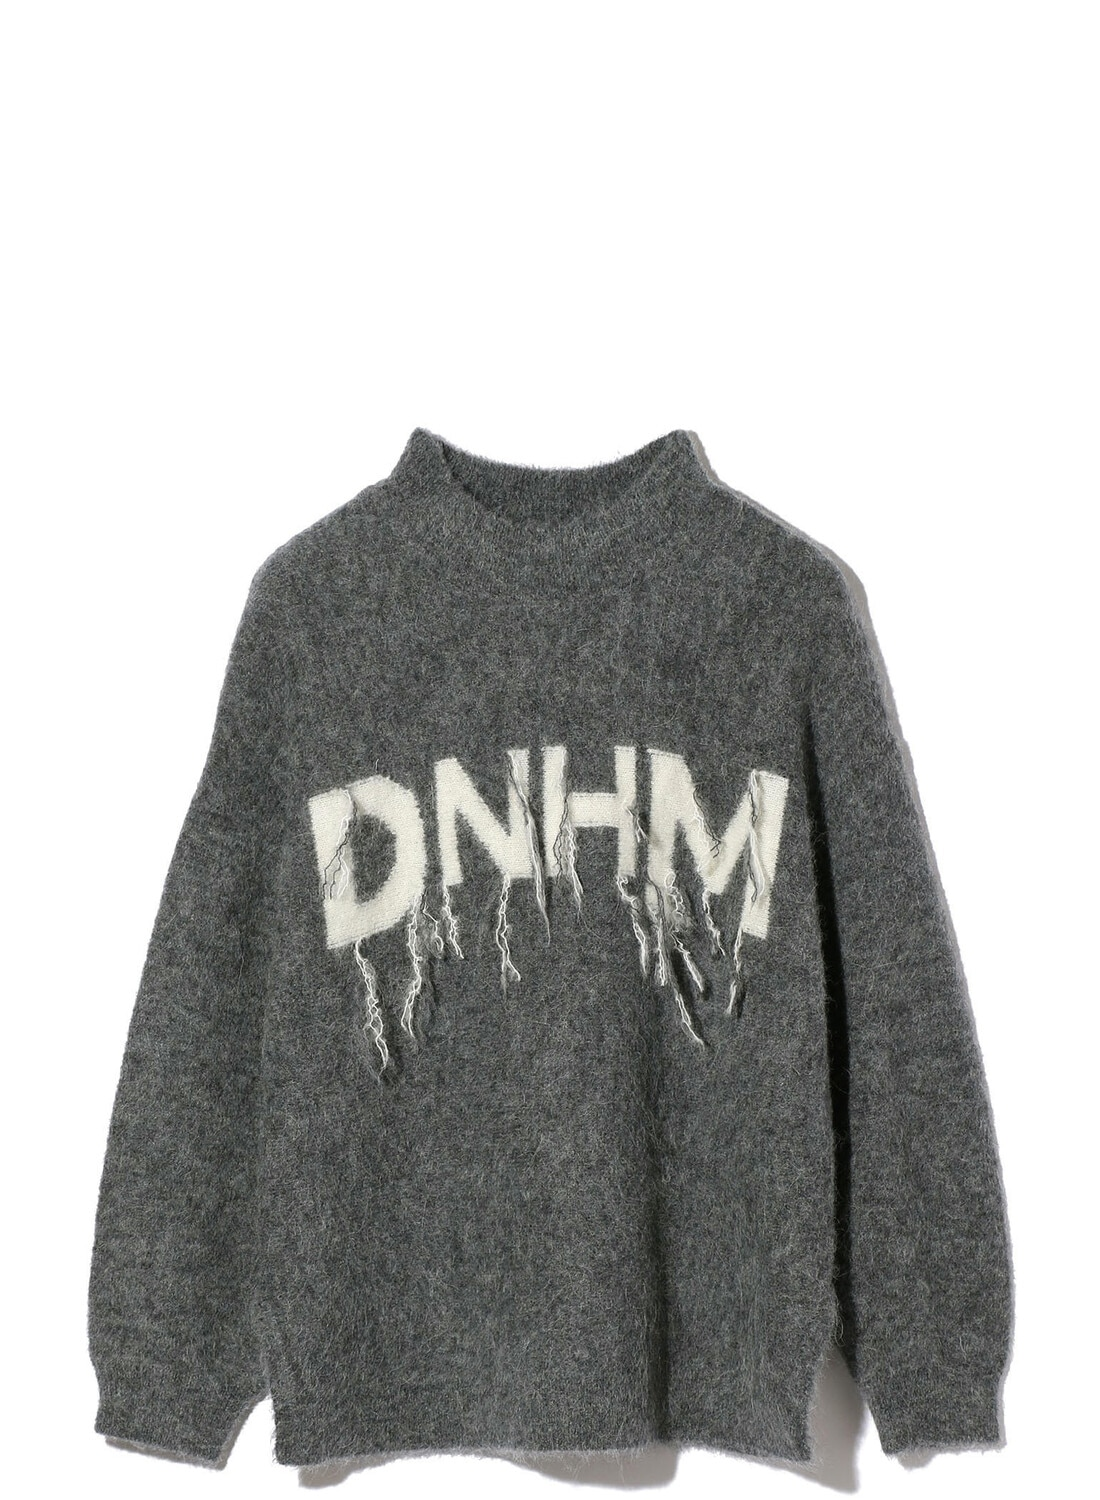 【日本限定】DNHM LOOSE KNIT TOPS